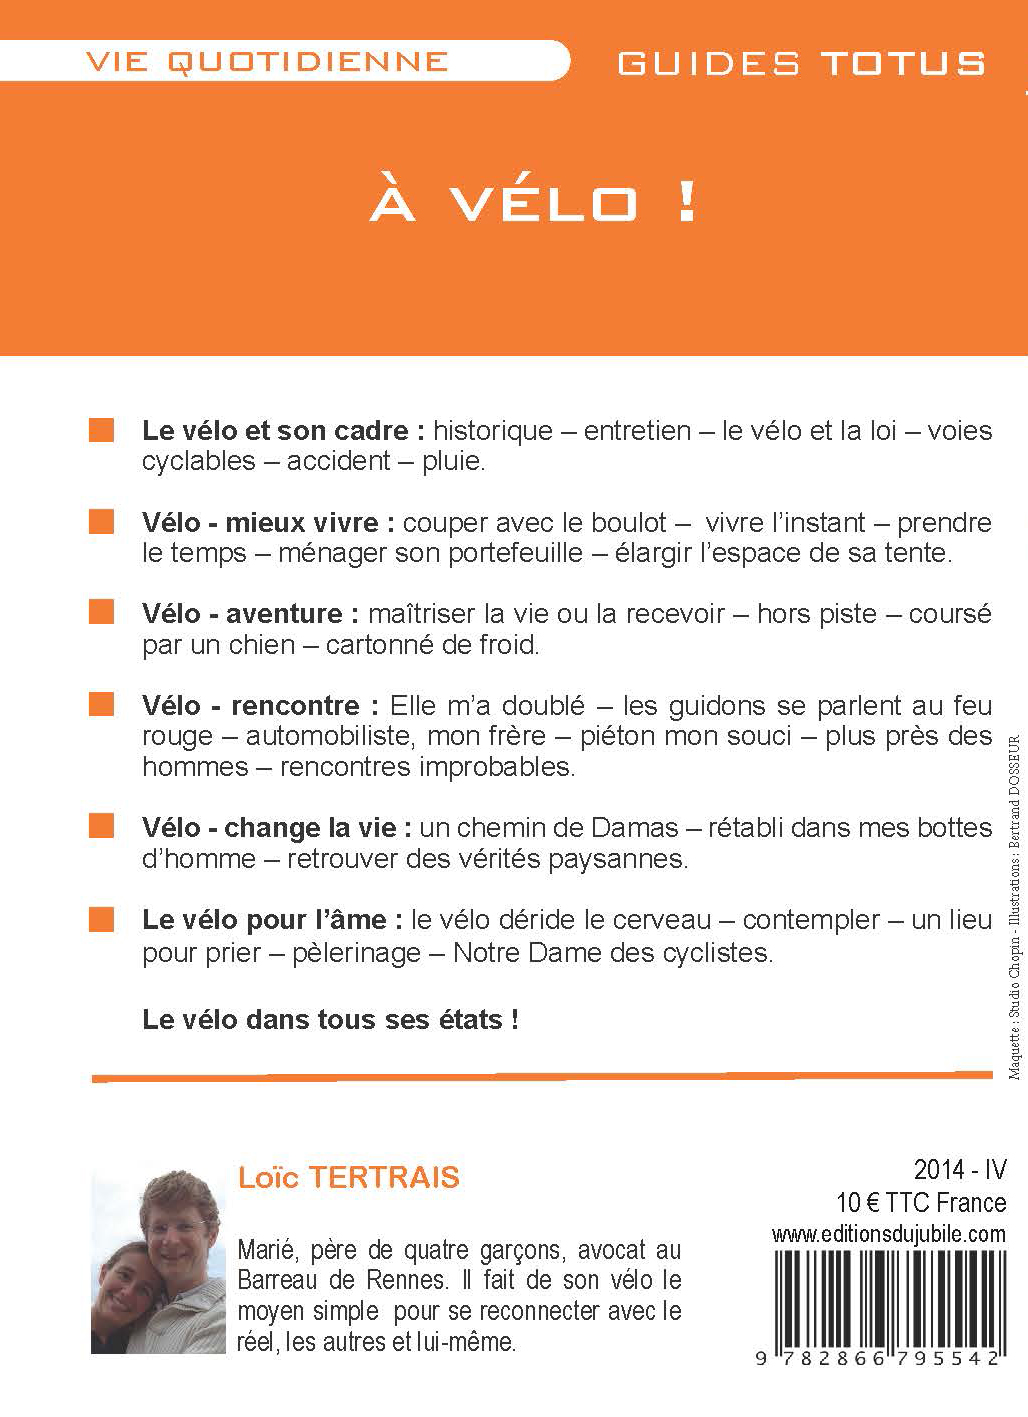 couverture-guide-totus-velo-3